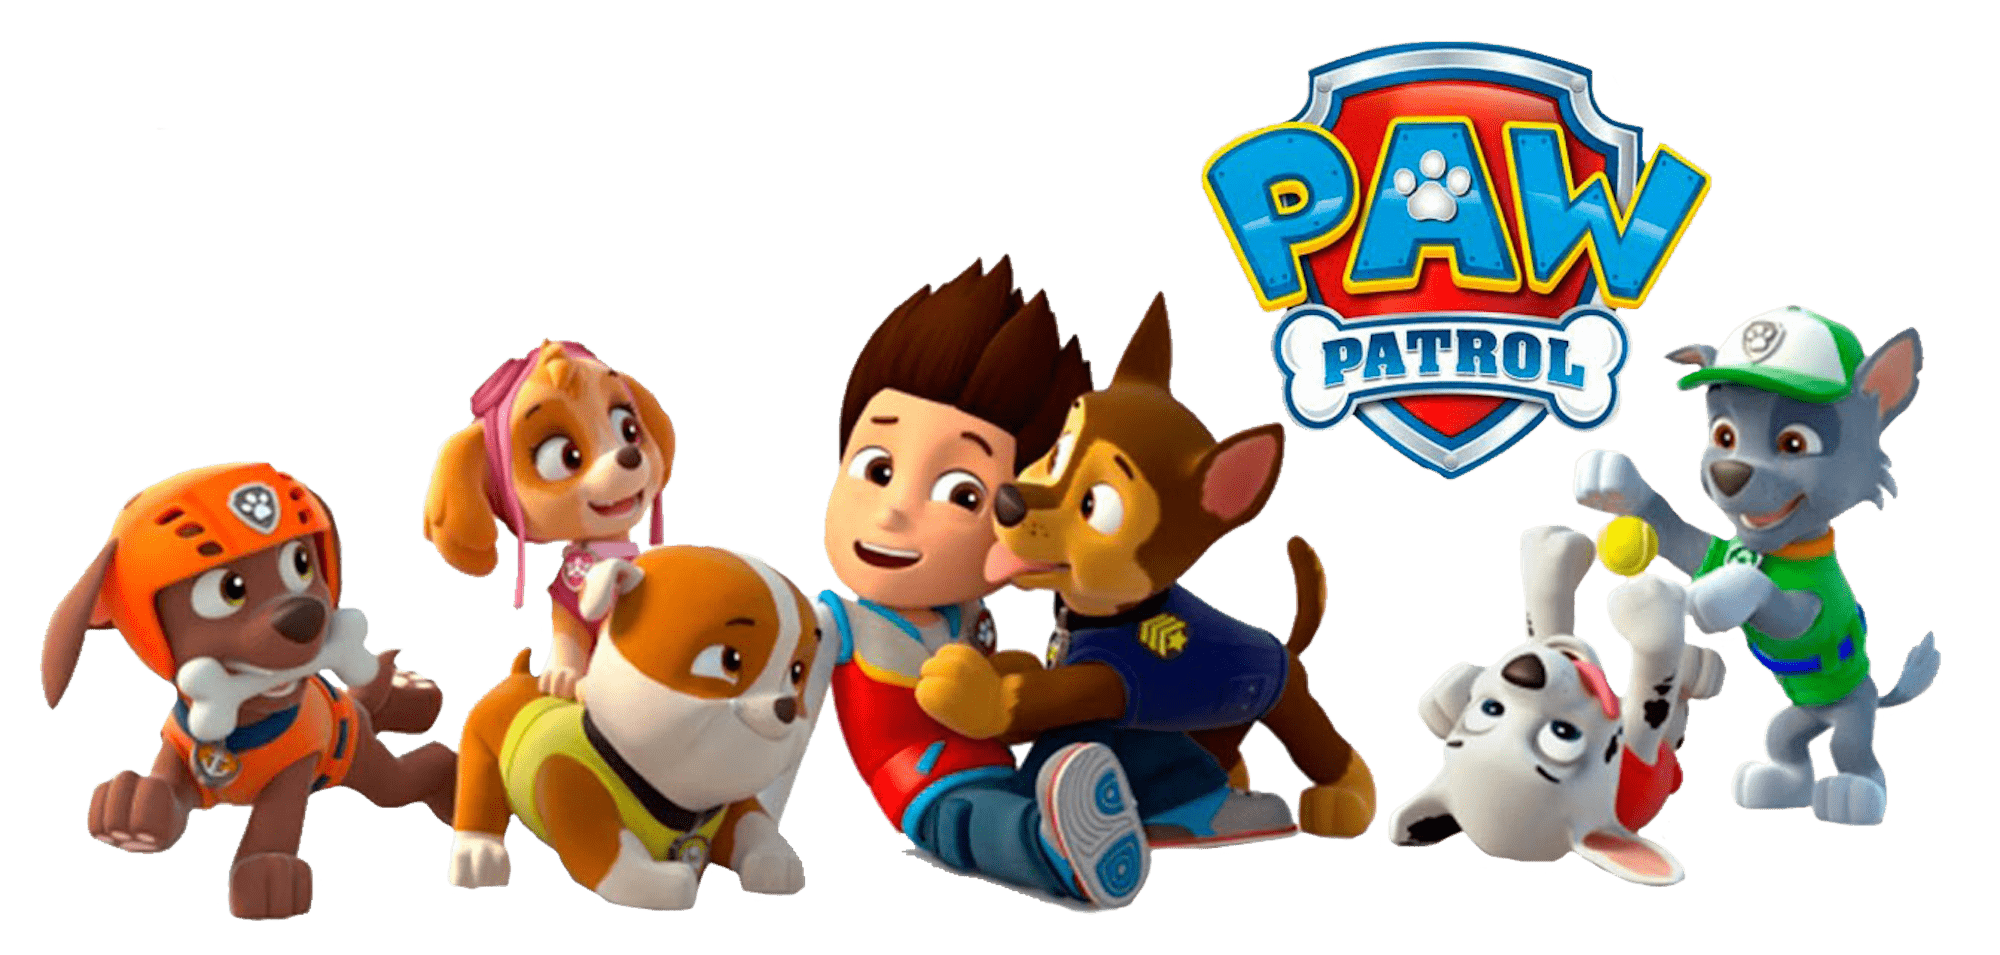 Paw patrol clipart chase jpg library stock Ryder With Chase Paw Patrol Clipart Png jpg library stock